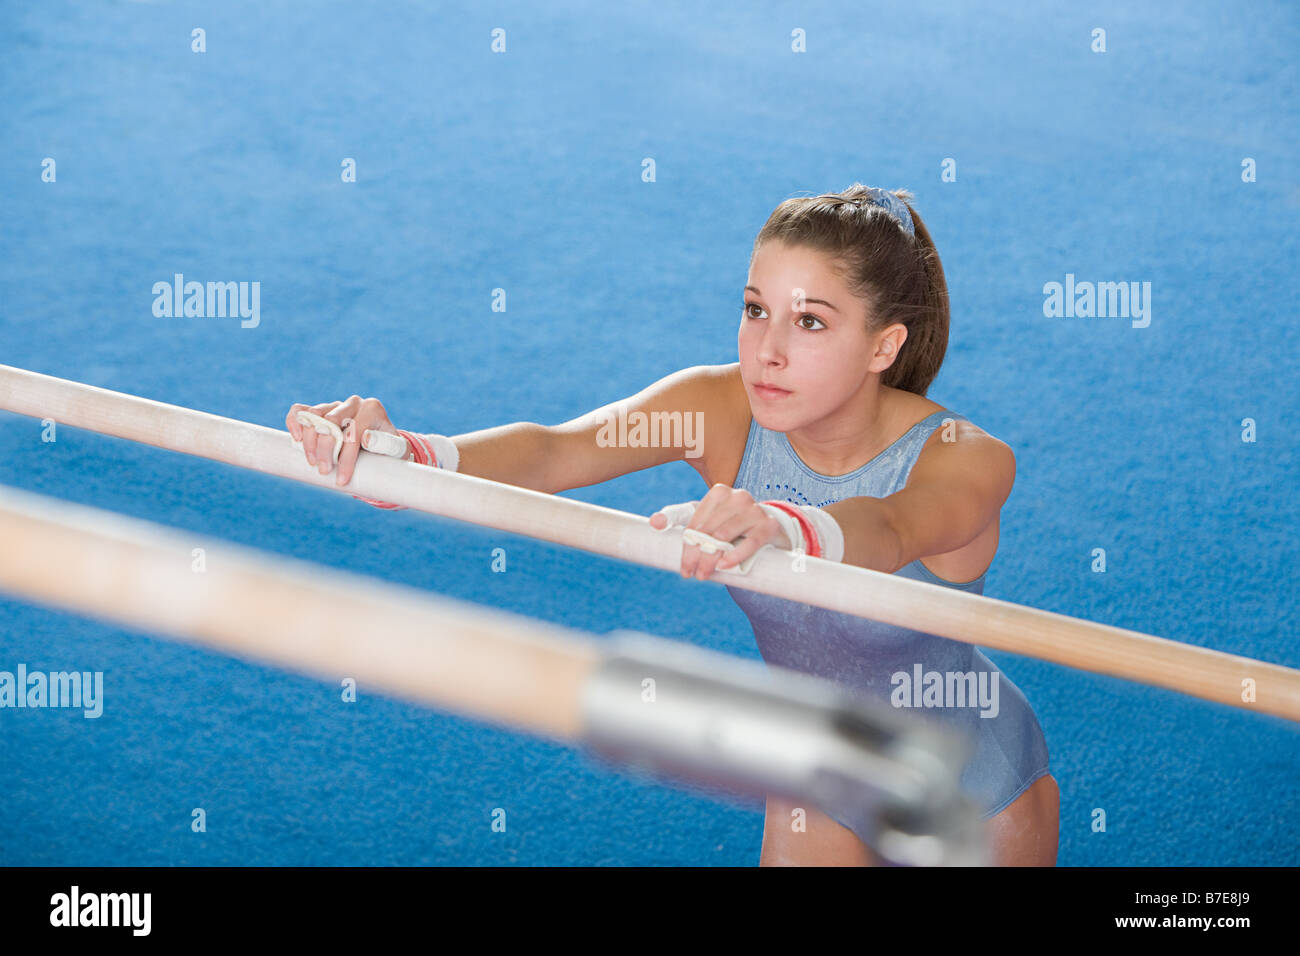 Gymanst holding onto uneven parallel bars - Stock Image